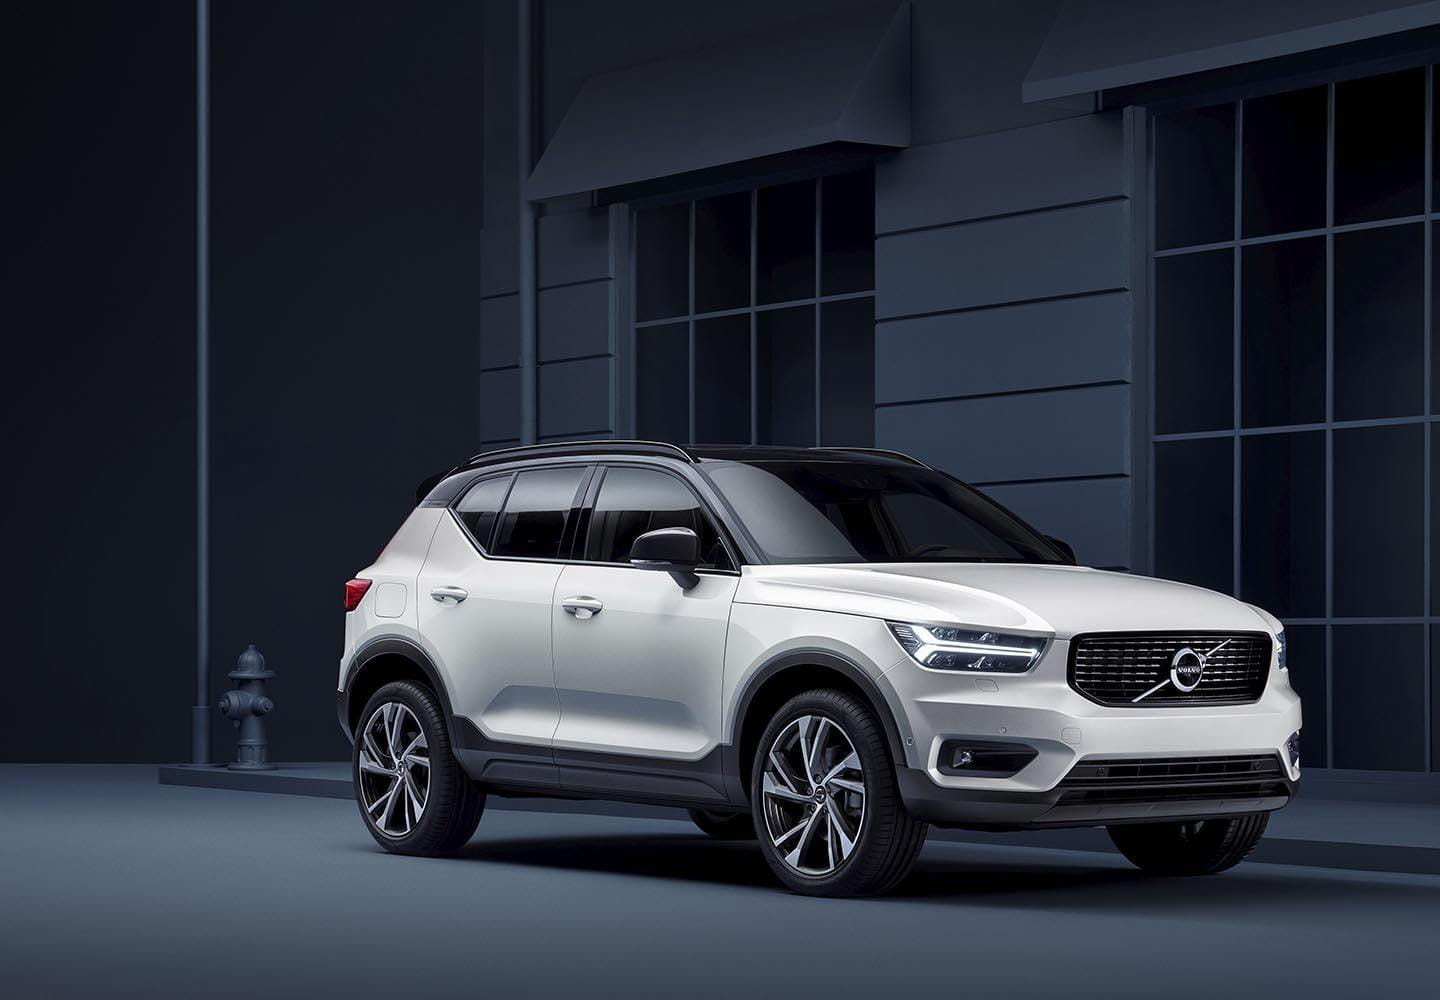 volvo xc40 precios prueba ficha t cnica fotos y. Black Bedroom Furniture Sets. Home Design Ideas